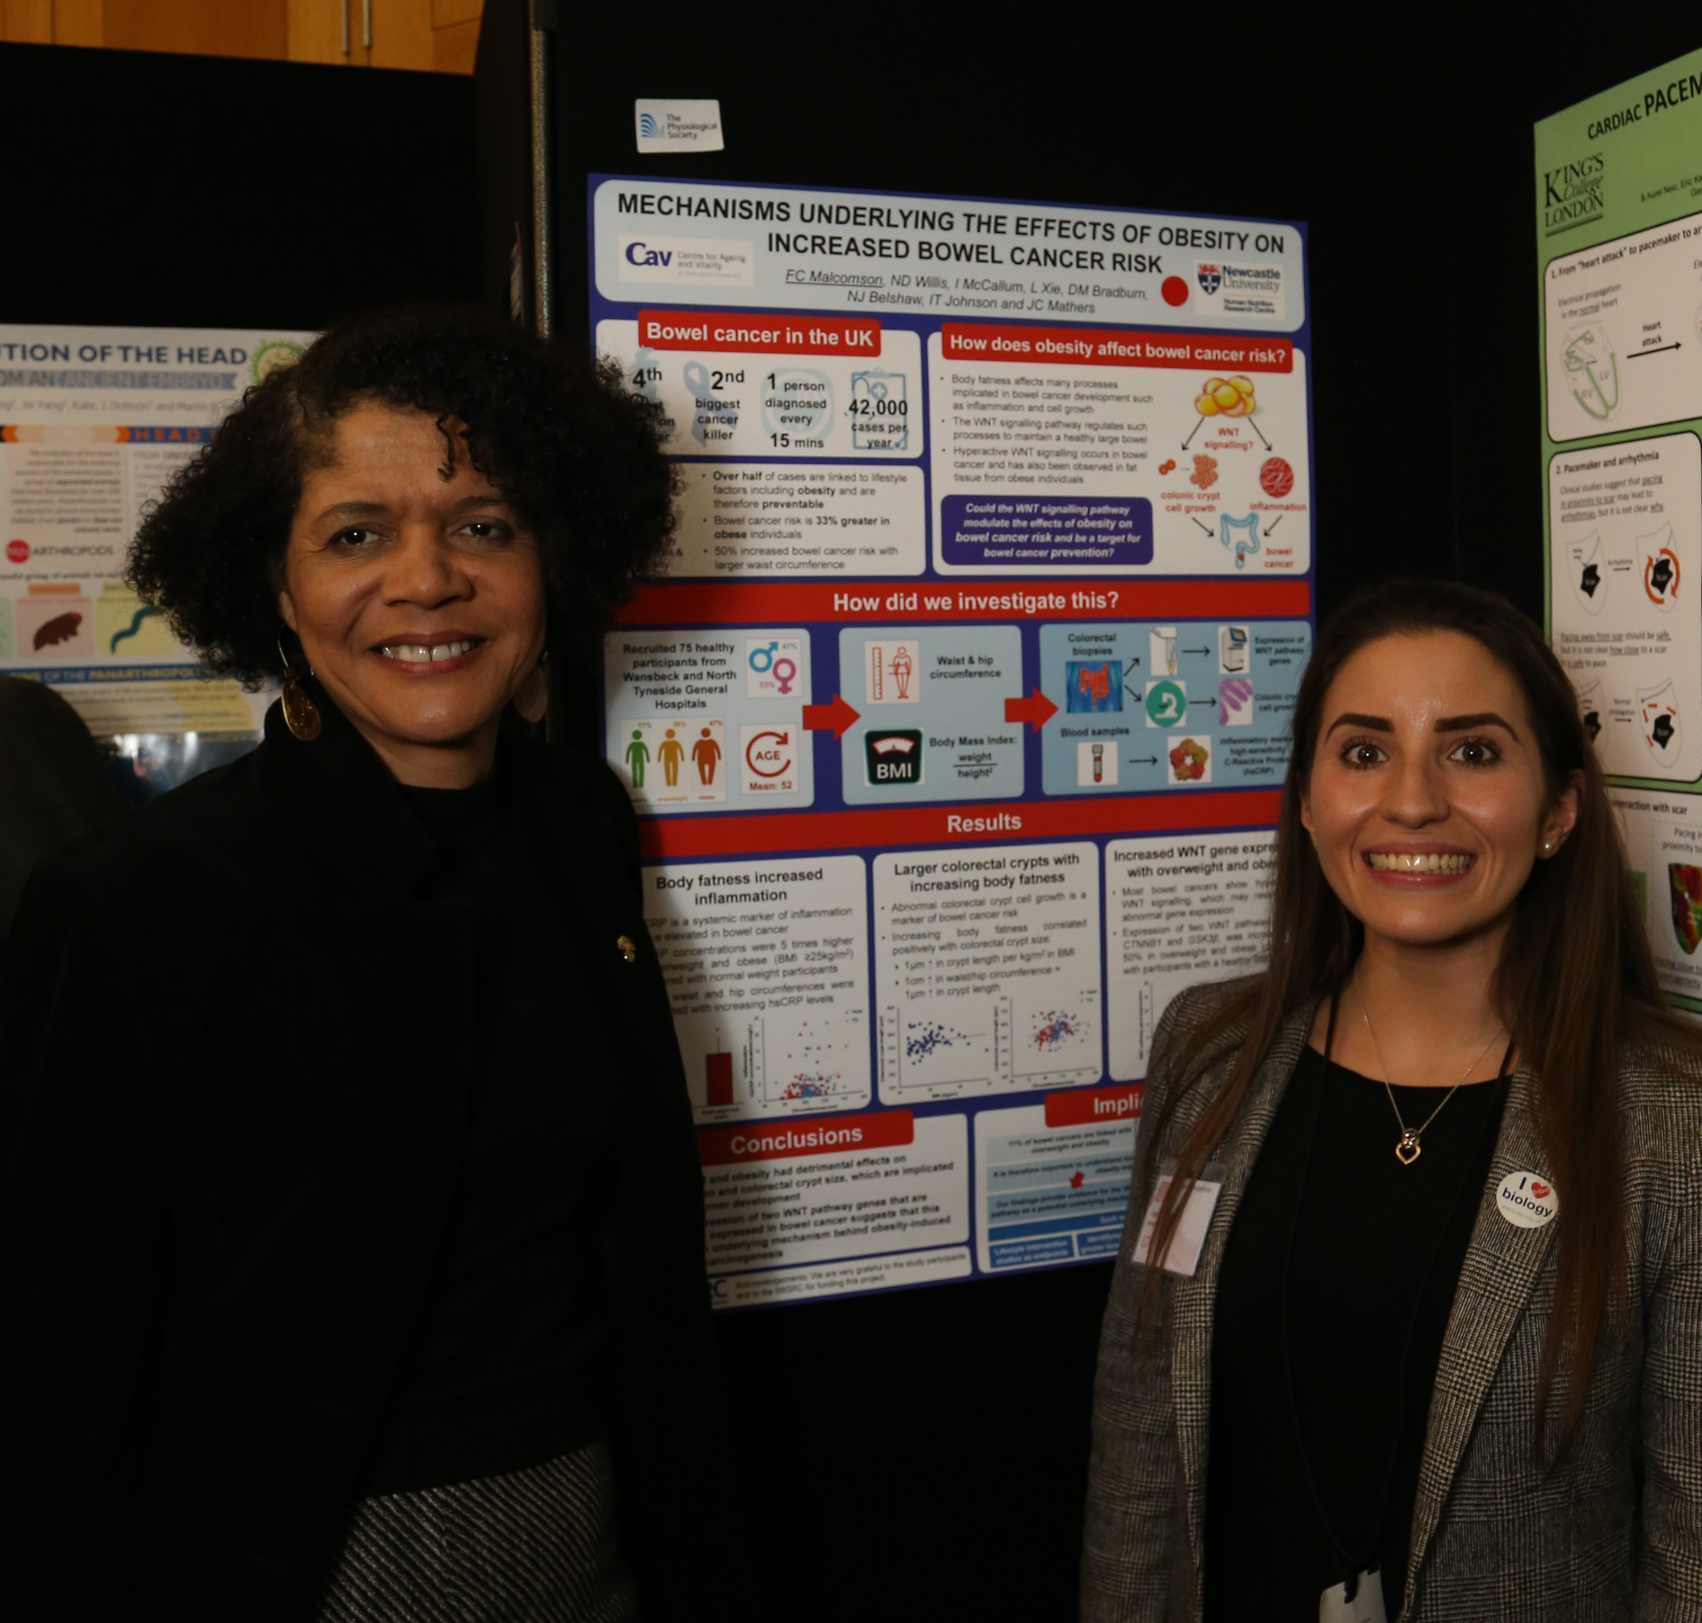 Fiona Malcomson, Human Nutrition Research Centre, Newcastle University (R) with Chi Onwurah MP, Shadow Minister for Business, Energy and Industrial Strategy (L)